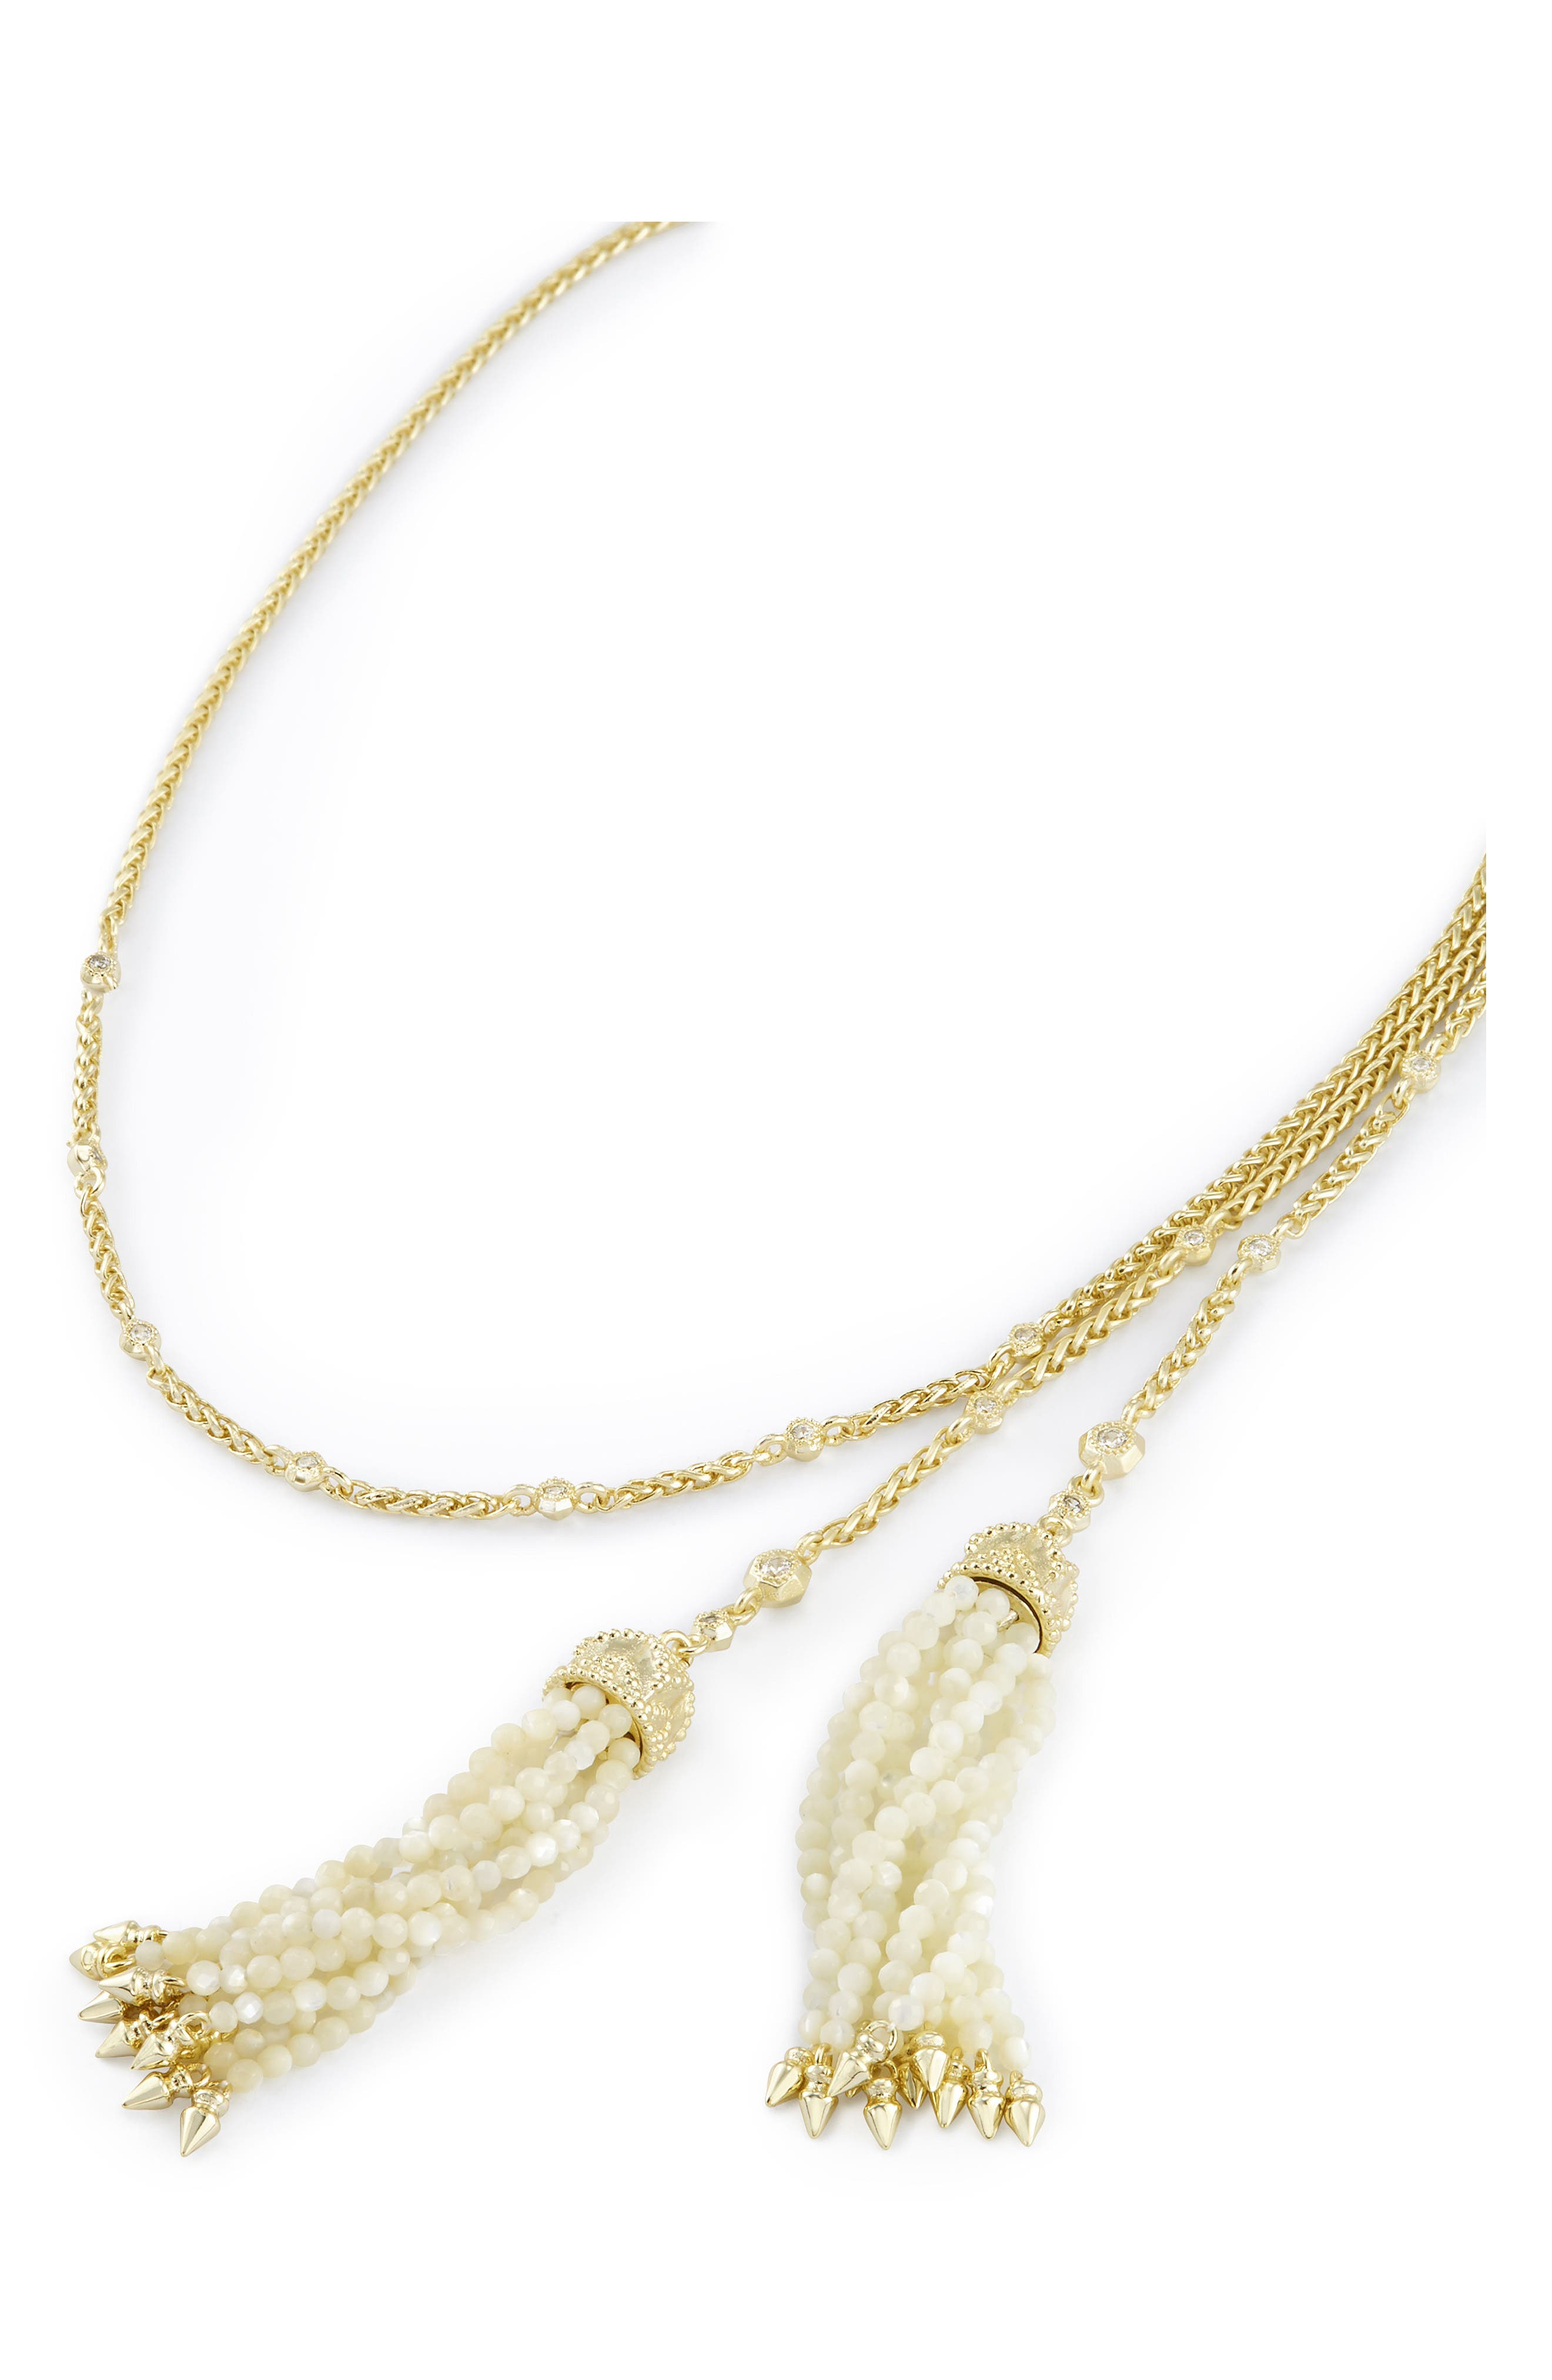 Monique Tassel Necklace,                             Alternate thumbnail 3, color,                             Ivory Mop/ Gold